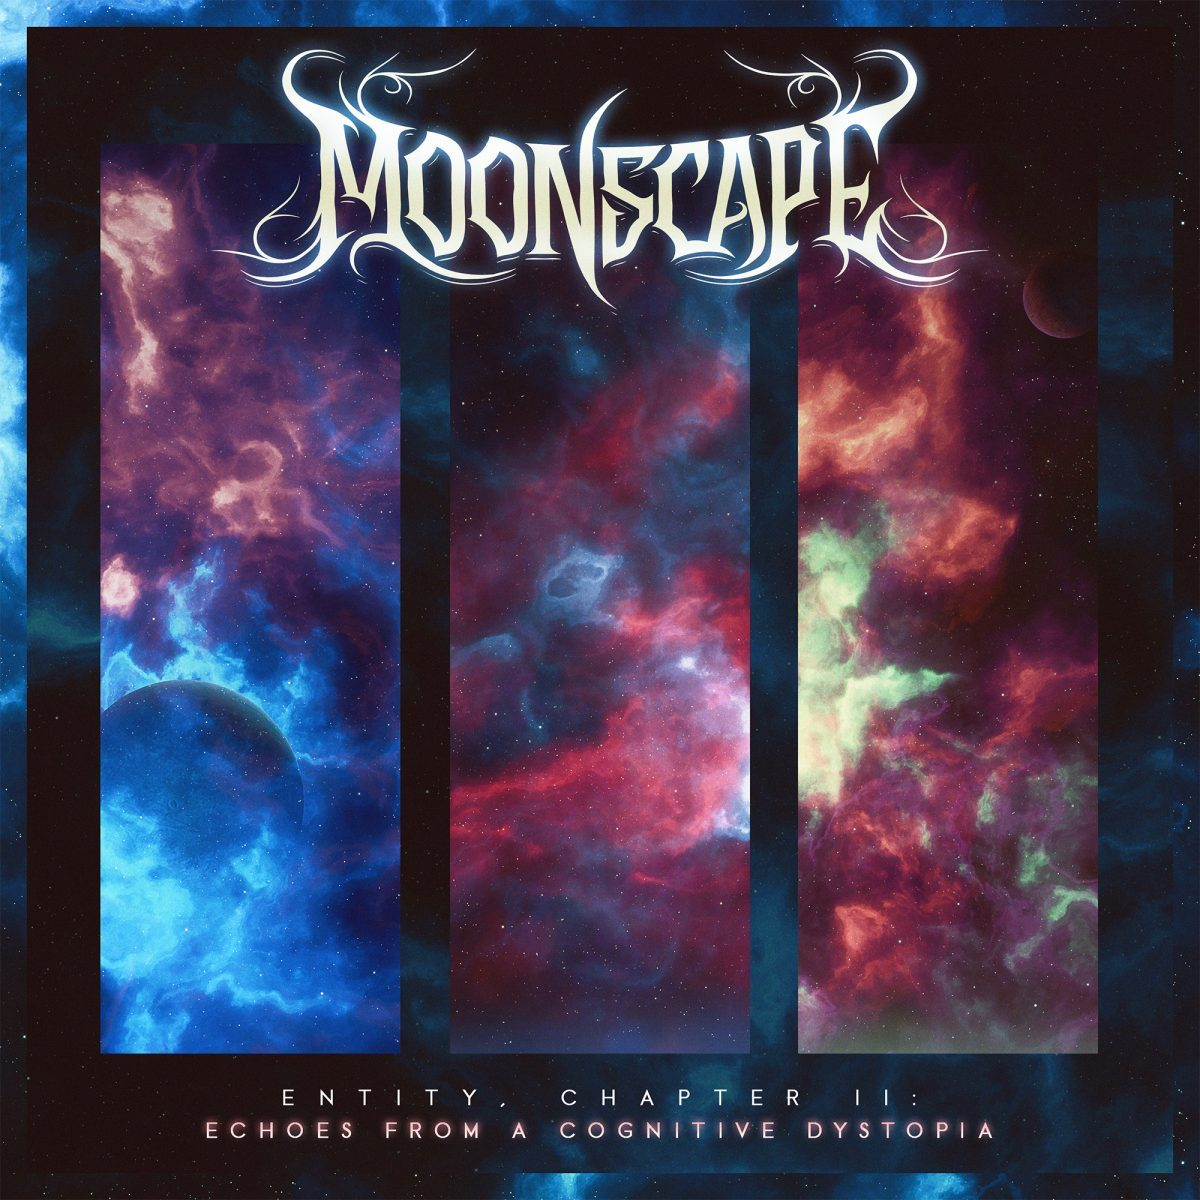 moonscape-entity-chapter-ii-echoes-from-a-cognitive-dystopia-album-review